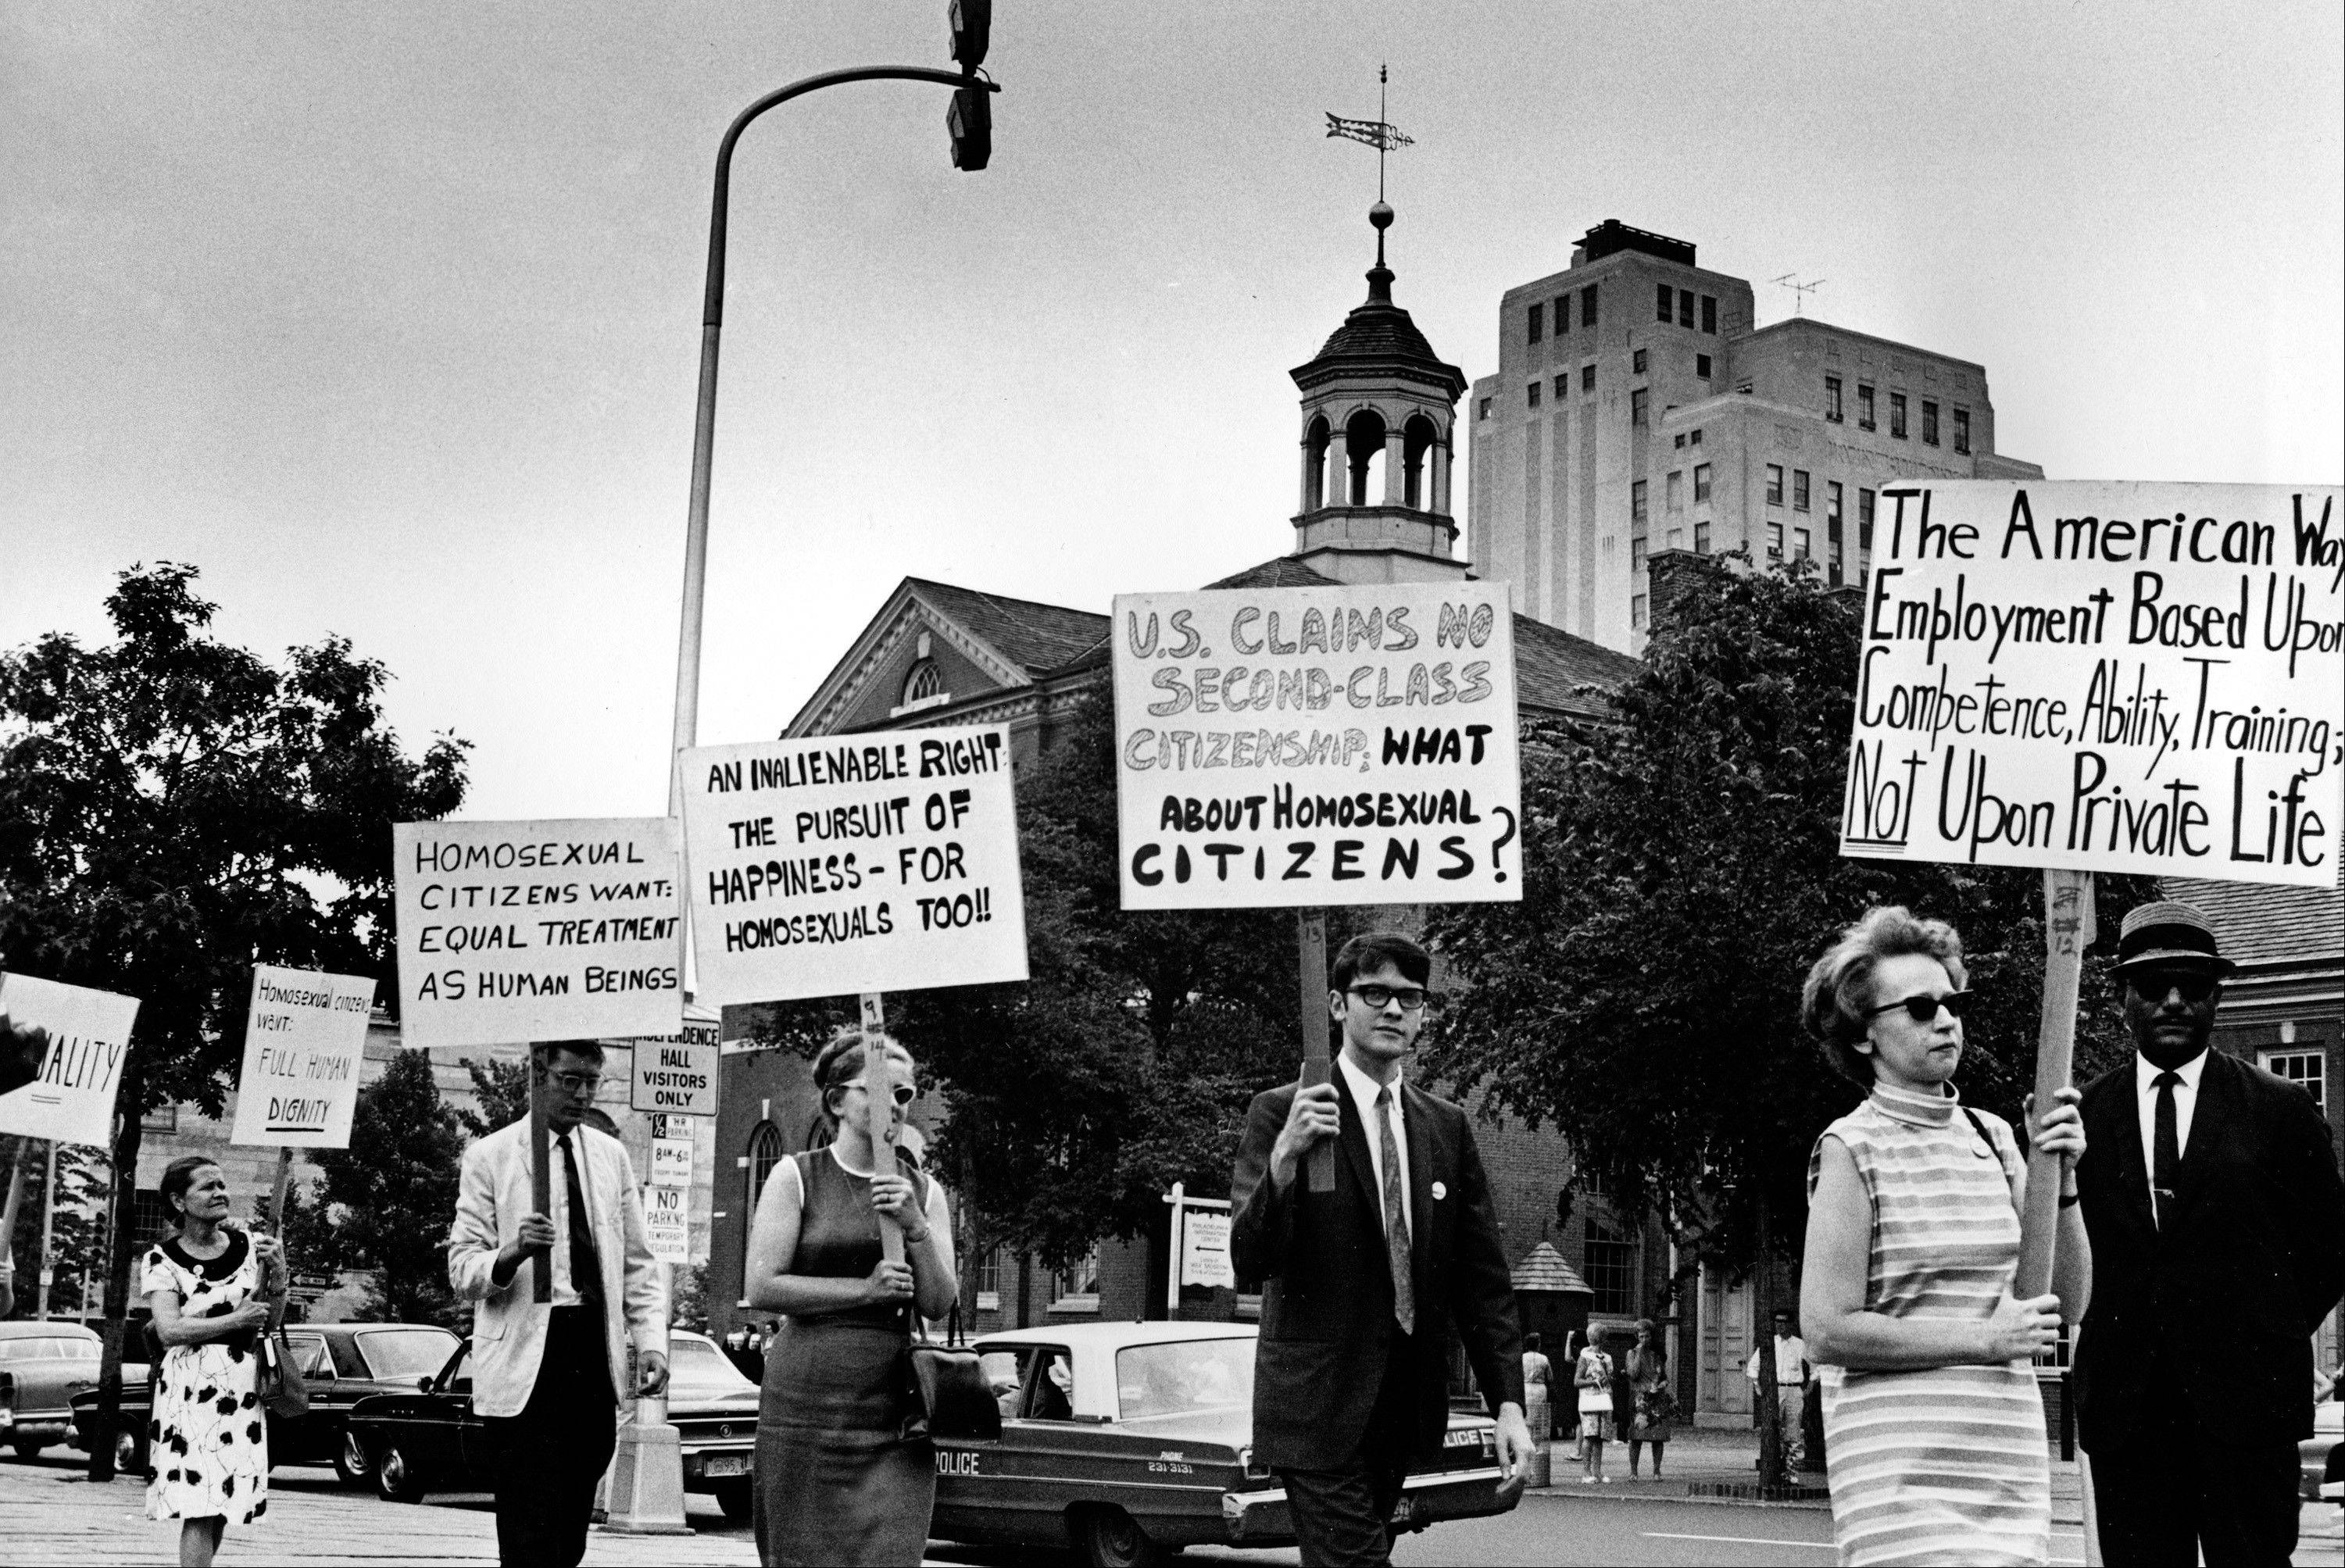 Kay Tobin Lahusen, right, and other demonstrators carry signs calling for protection of homosexuals from discrimination as they march in a picket line in front of Independence Hall in Philadelphia.